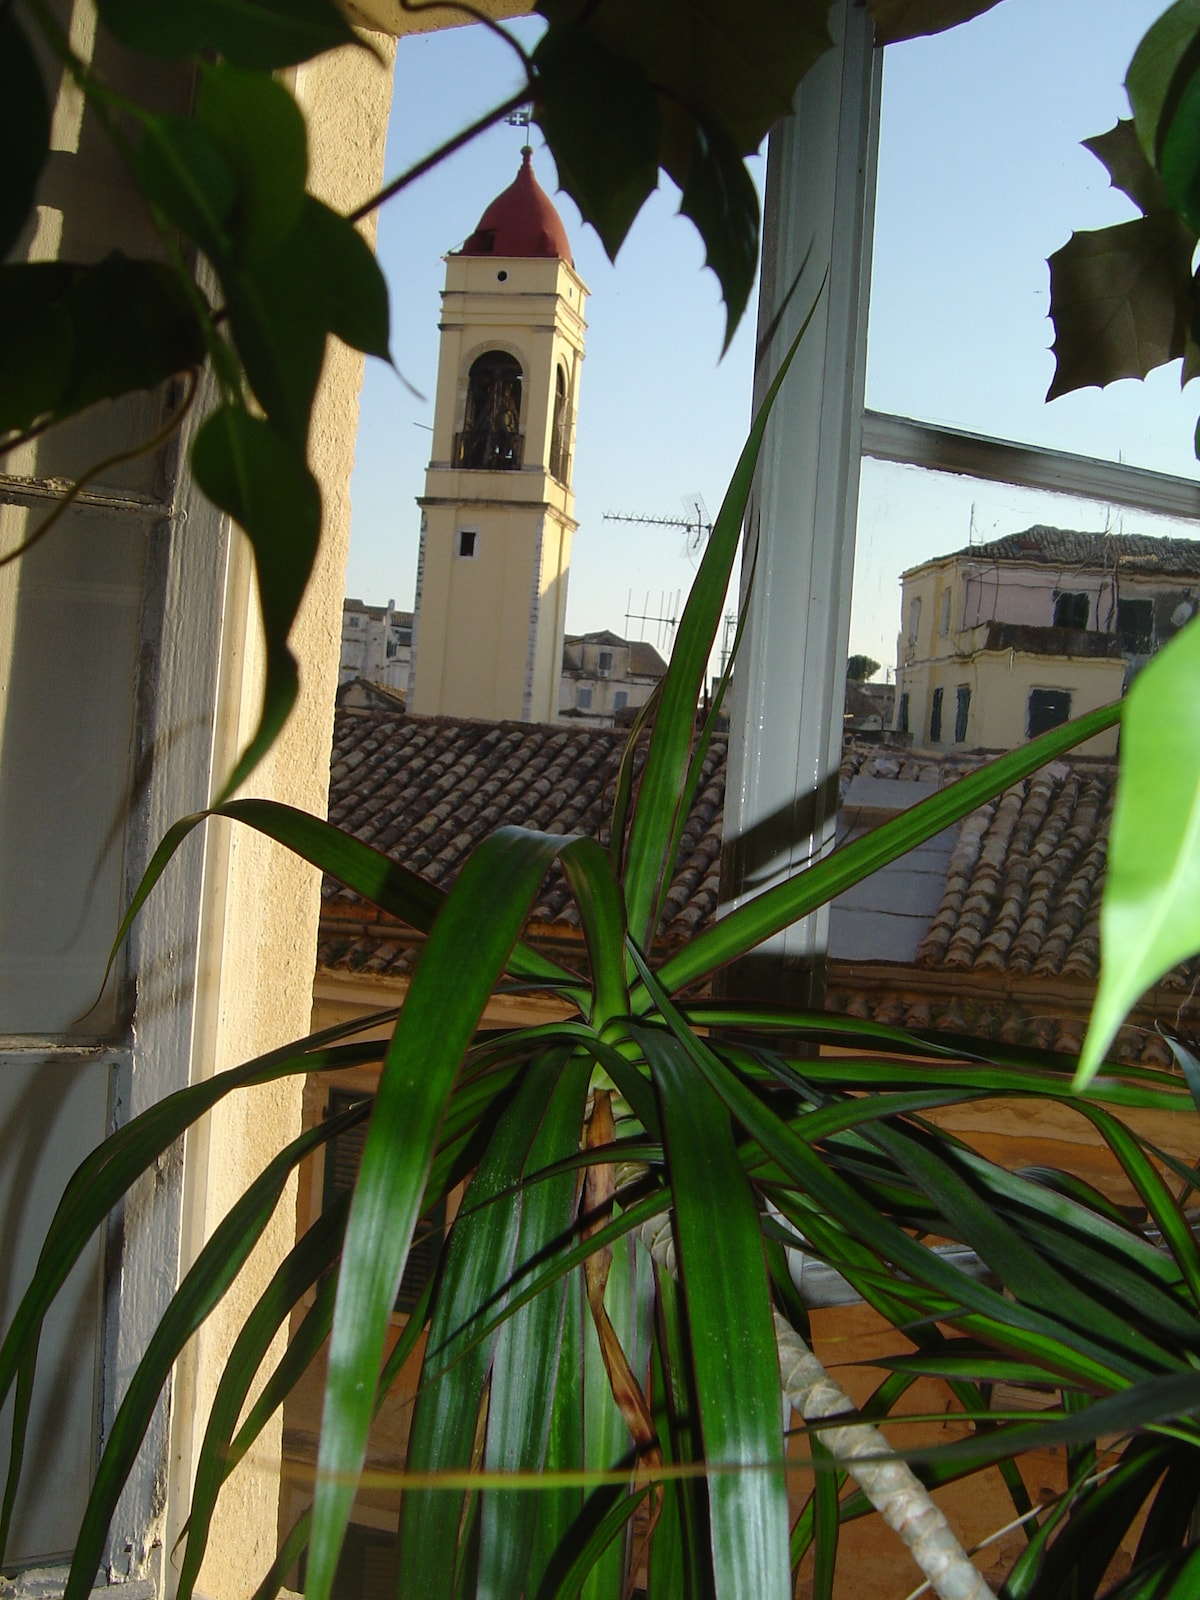 Corfu - Apartment in the Old Town